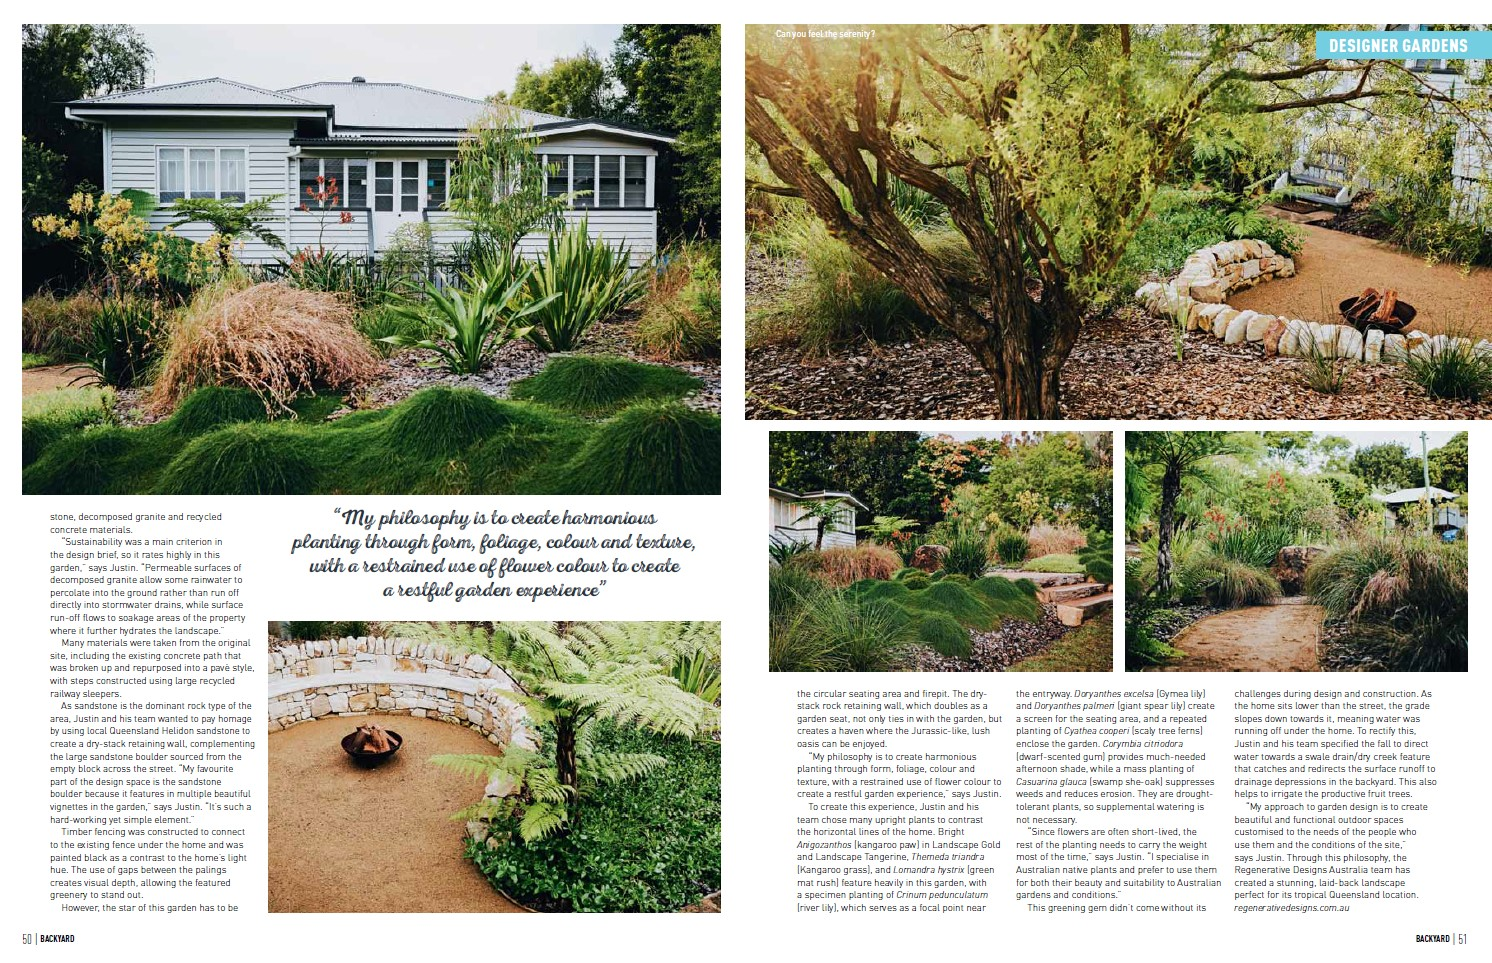 Backyard Magazine Feature Designer Gardens by Regenerative Designs Australia Landscaping Garden Landscape Design Sunshine Coast Pg3.jpg